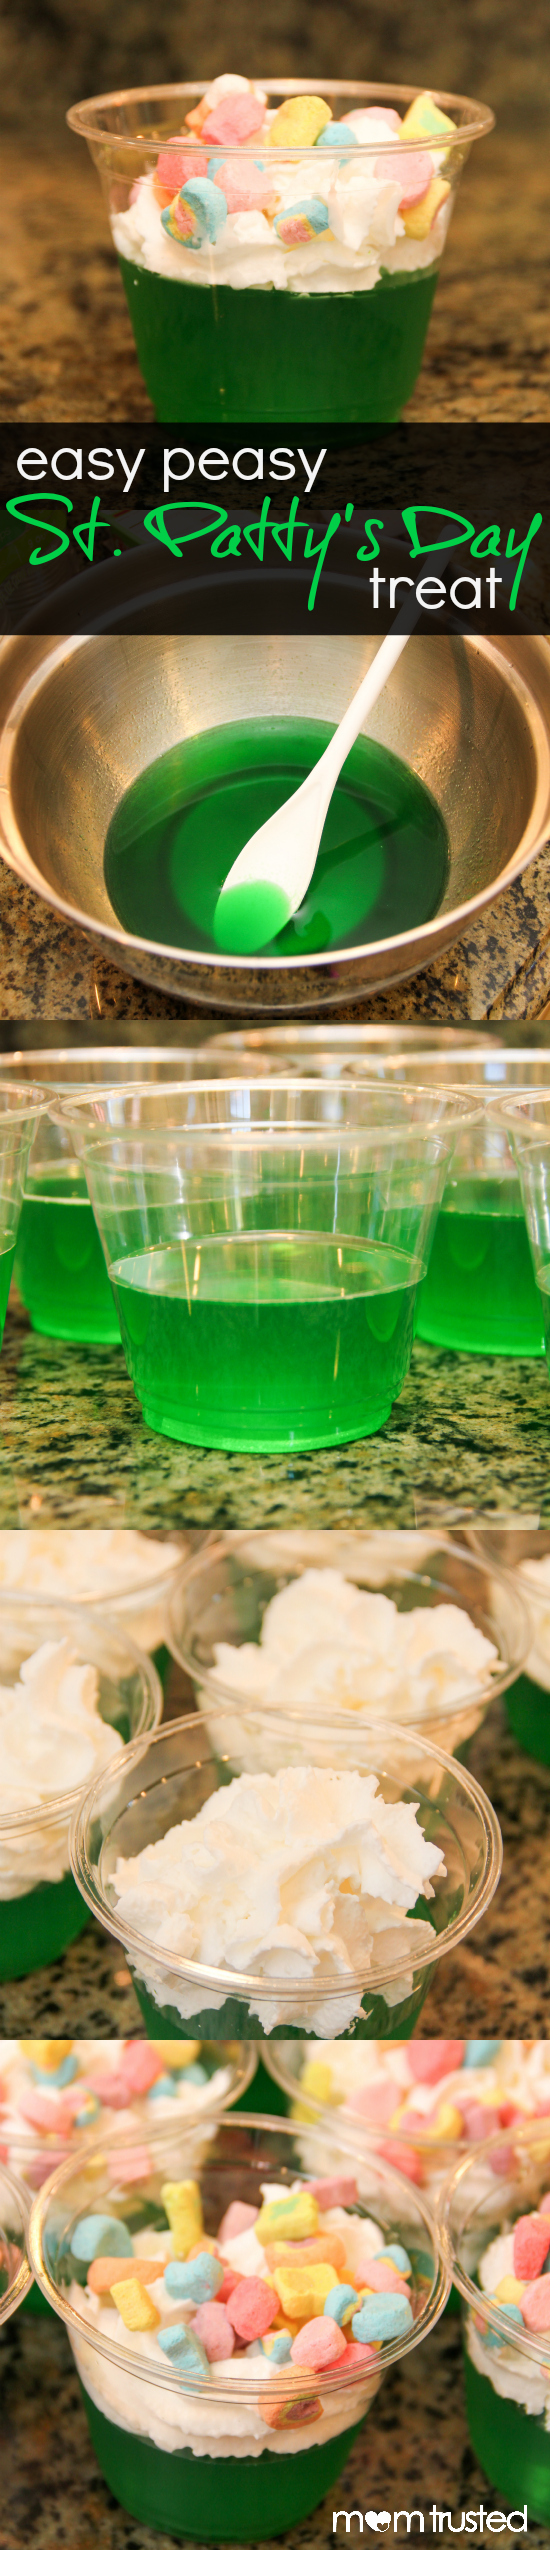 st pattys day dessert jello lucky charms treat